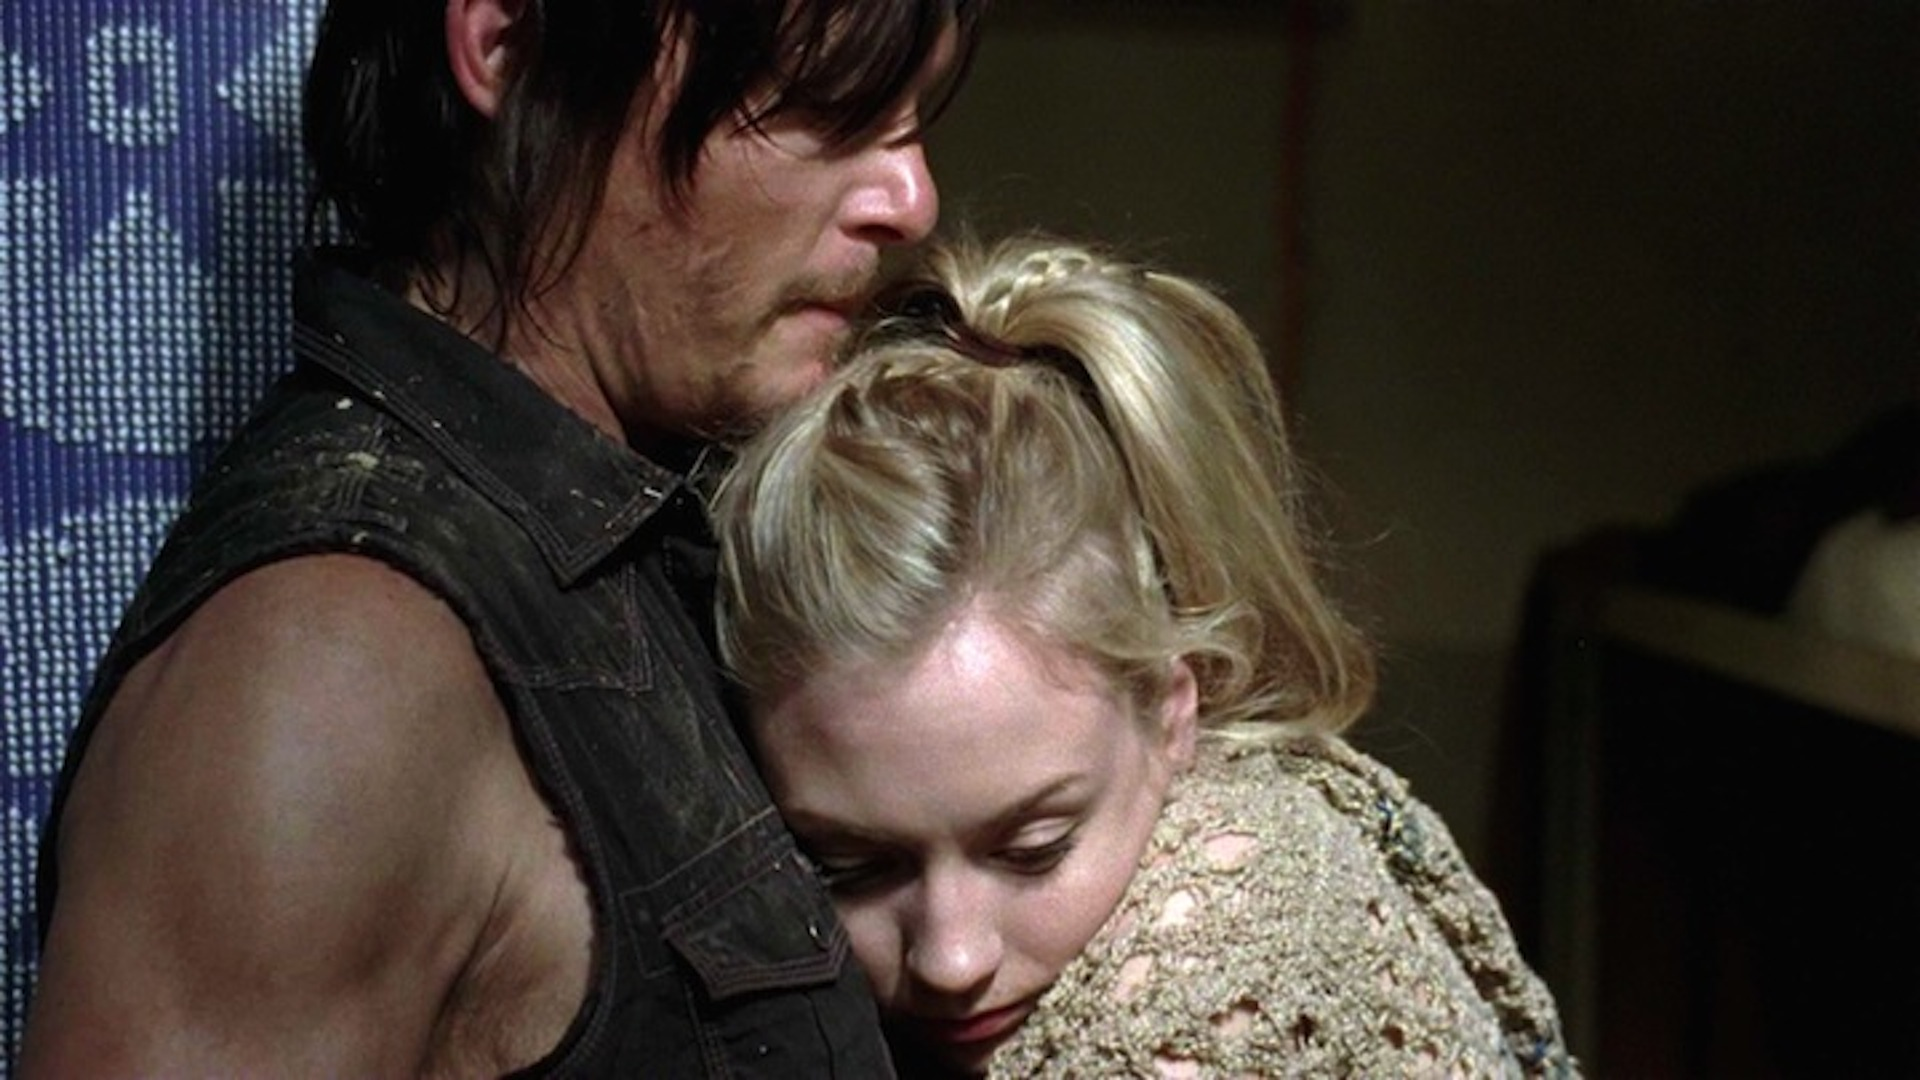 Daryl protects Beth in The Walking Dead